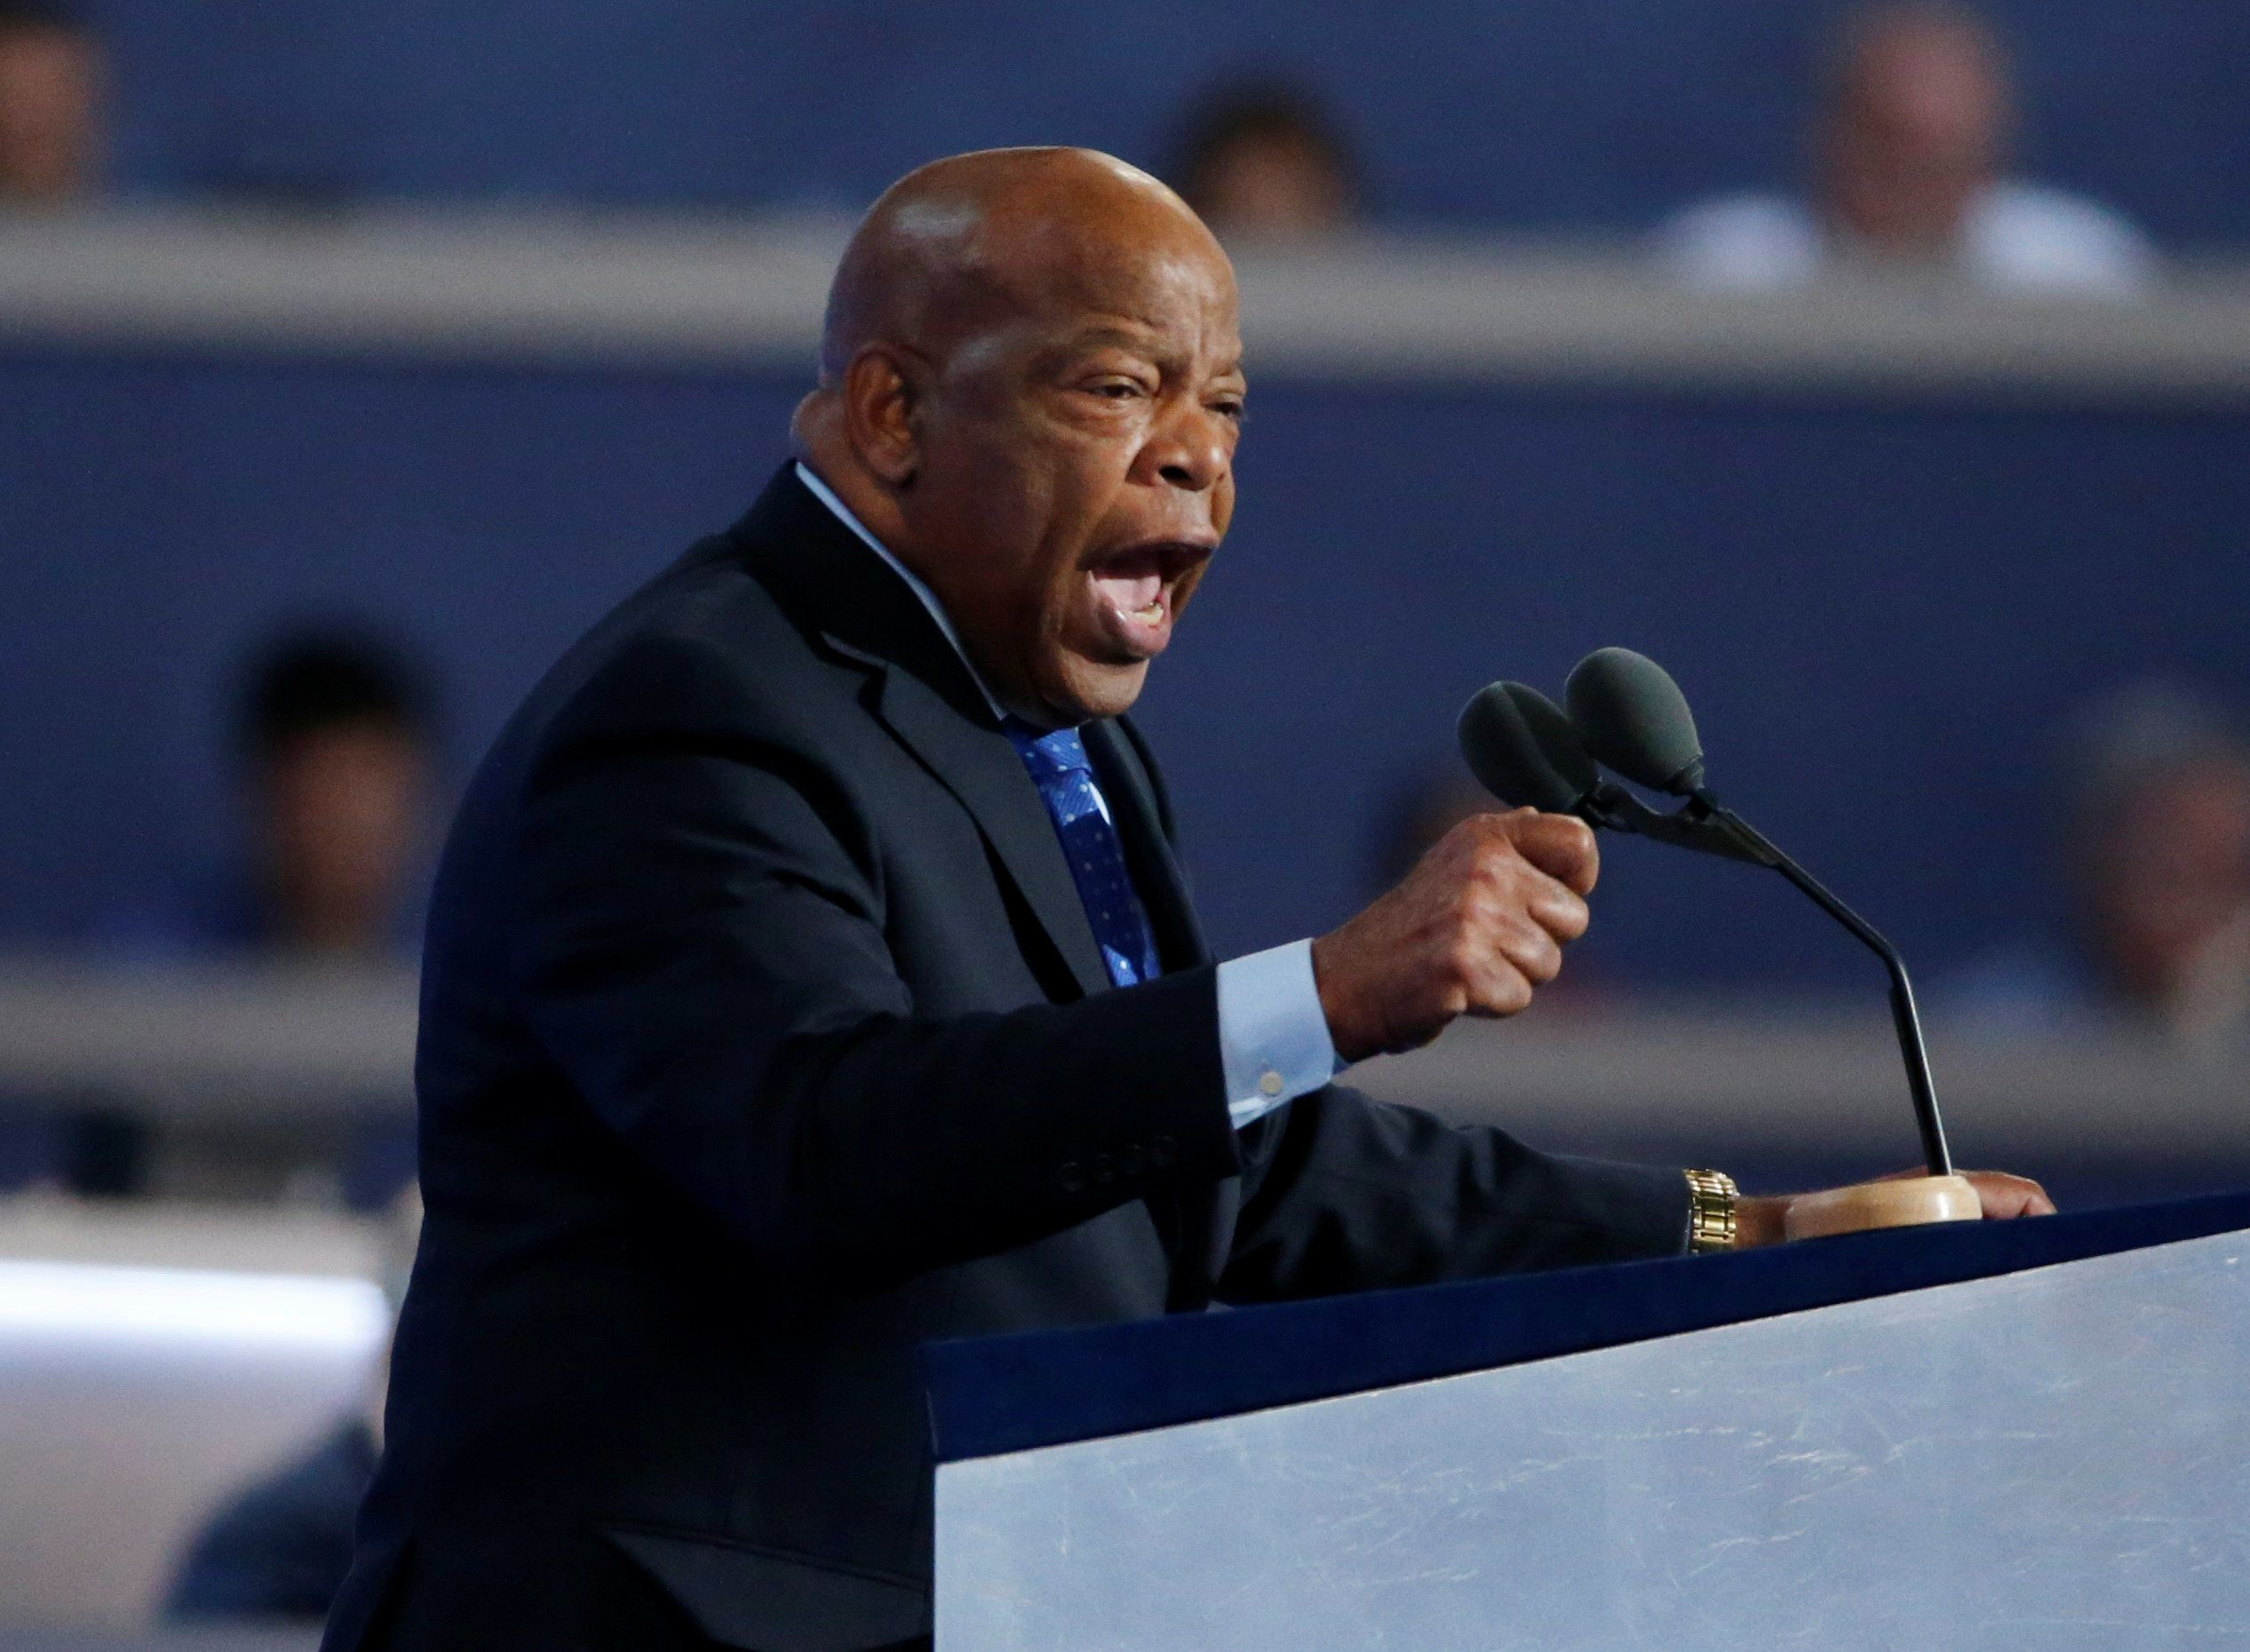 Rep. John Lewis says he isn't sure whether he can work with Donald Trump, the incoming president.